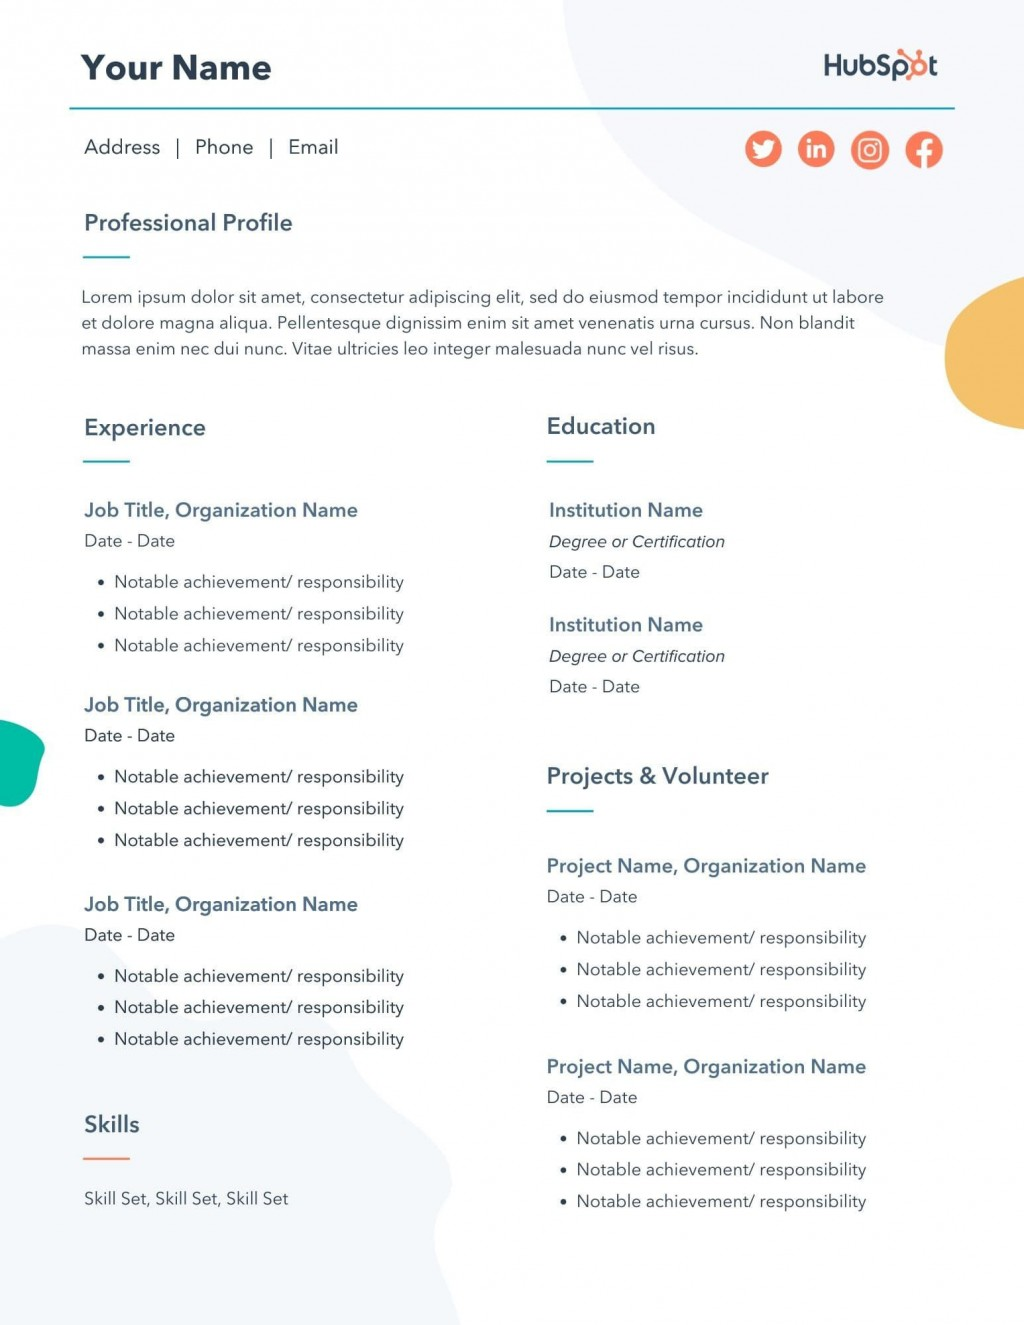 004 Top Resume Template For First Job Image  Student Australia After Time JobseekerLarge